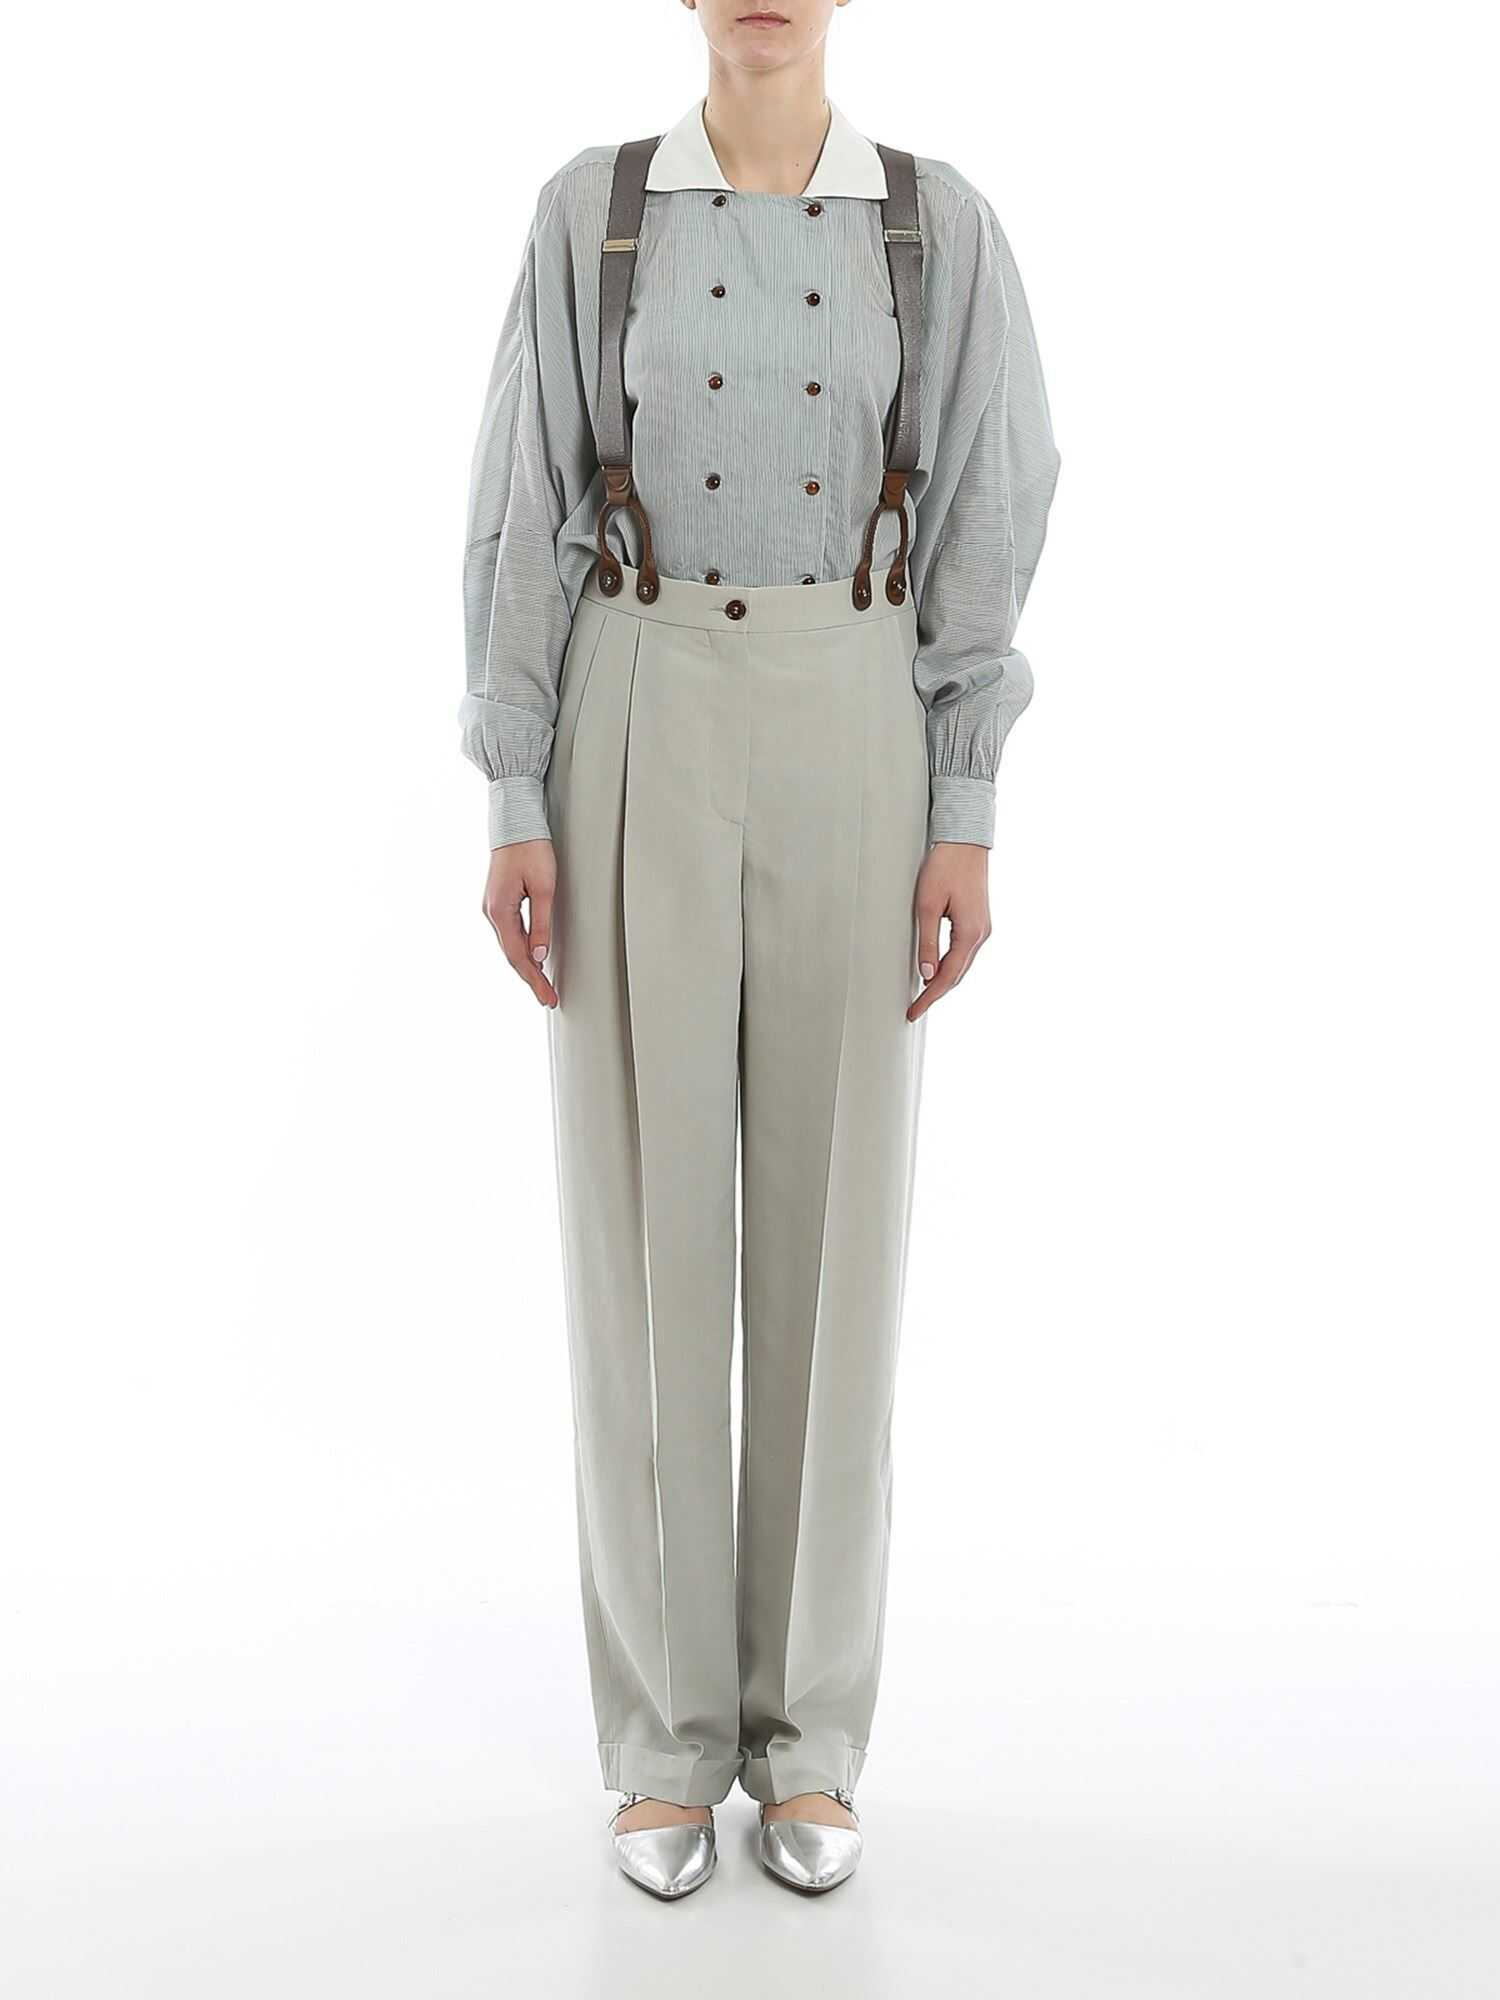 Giorgio Armani Shantung Trousers With Suspenders Green